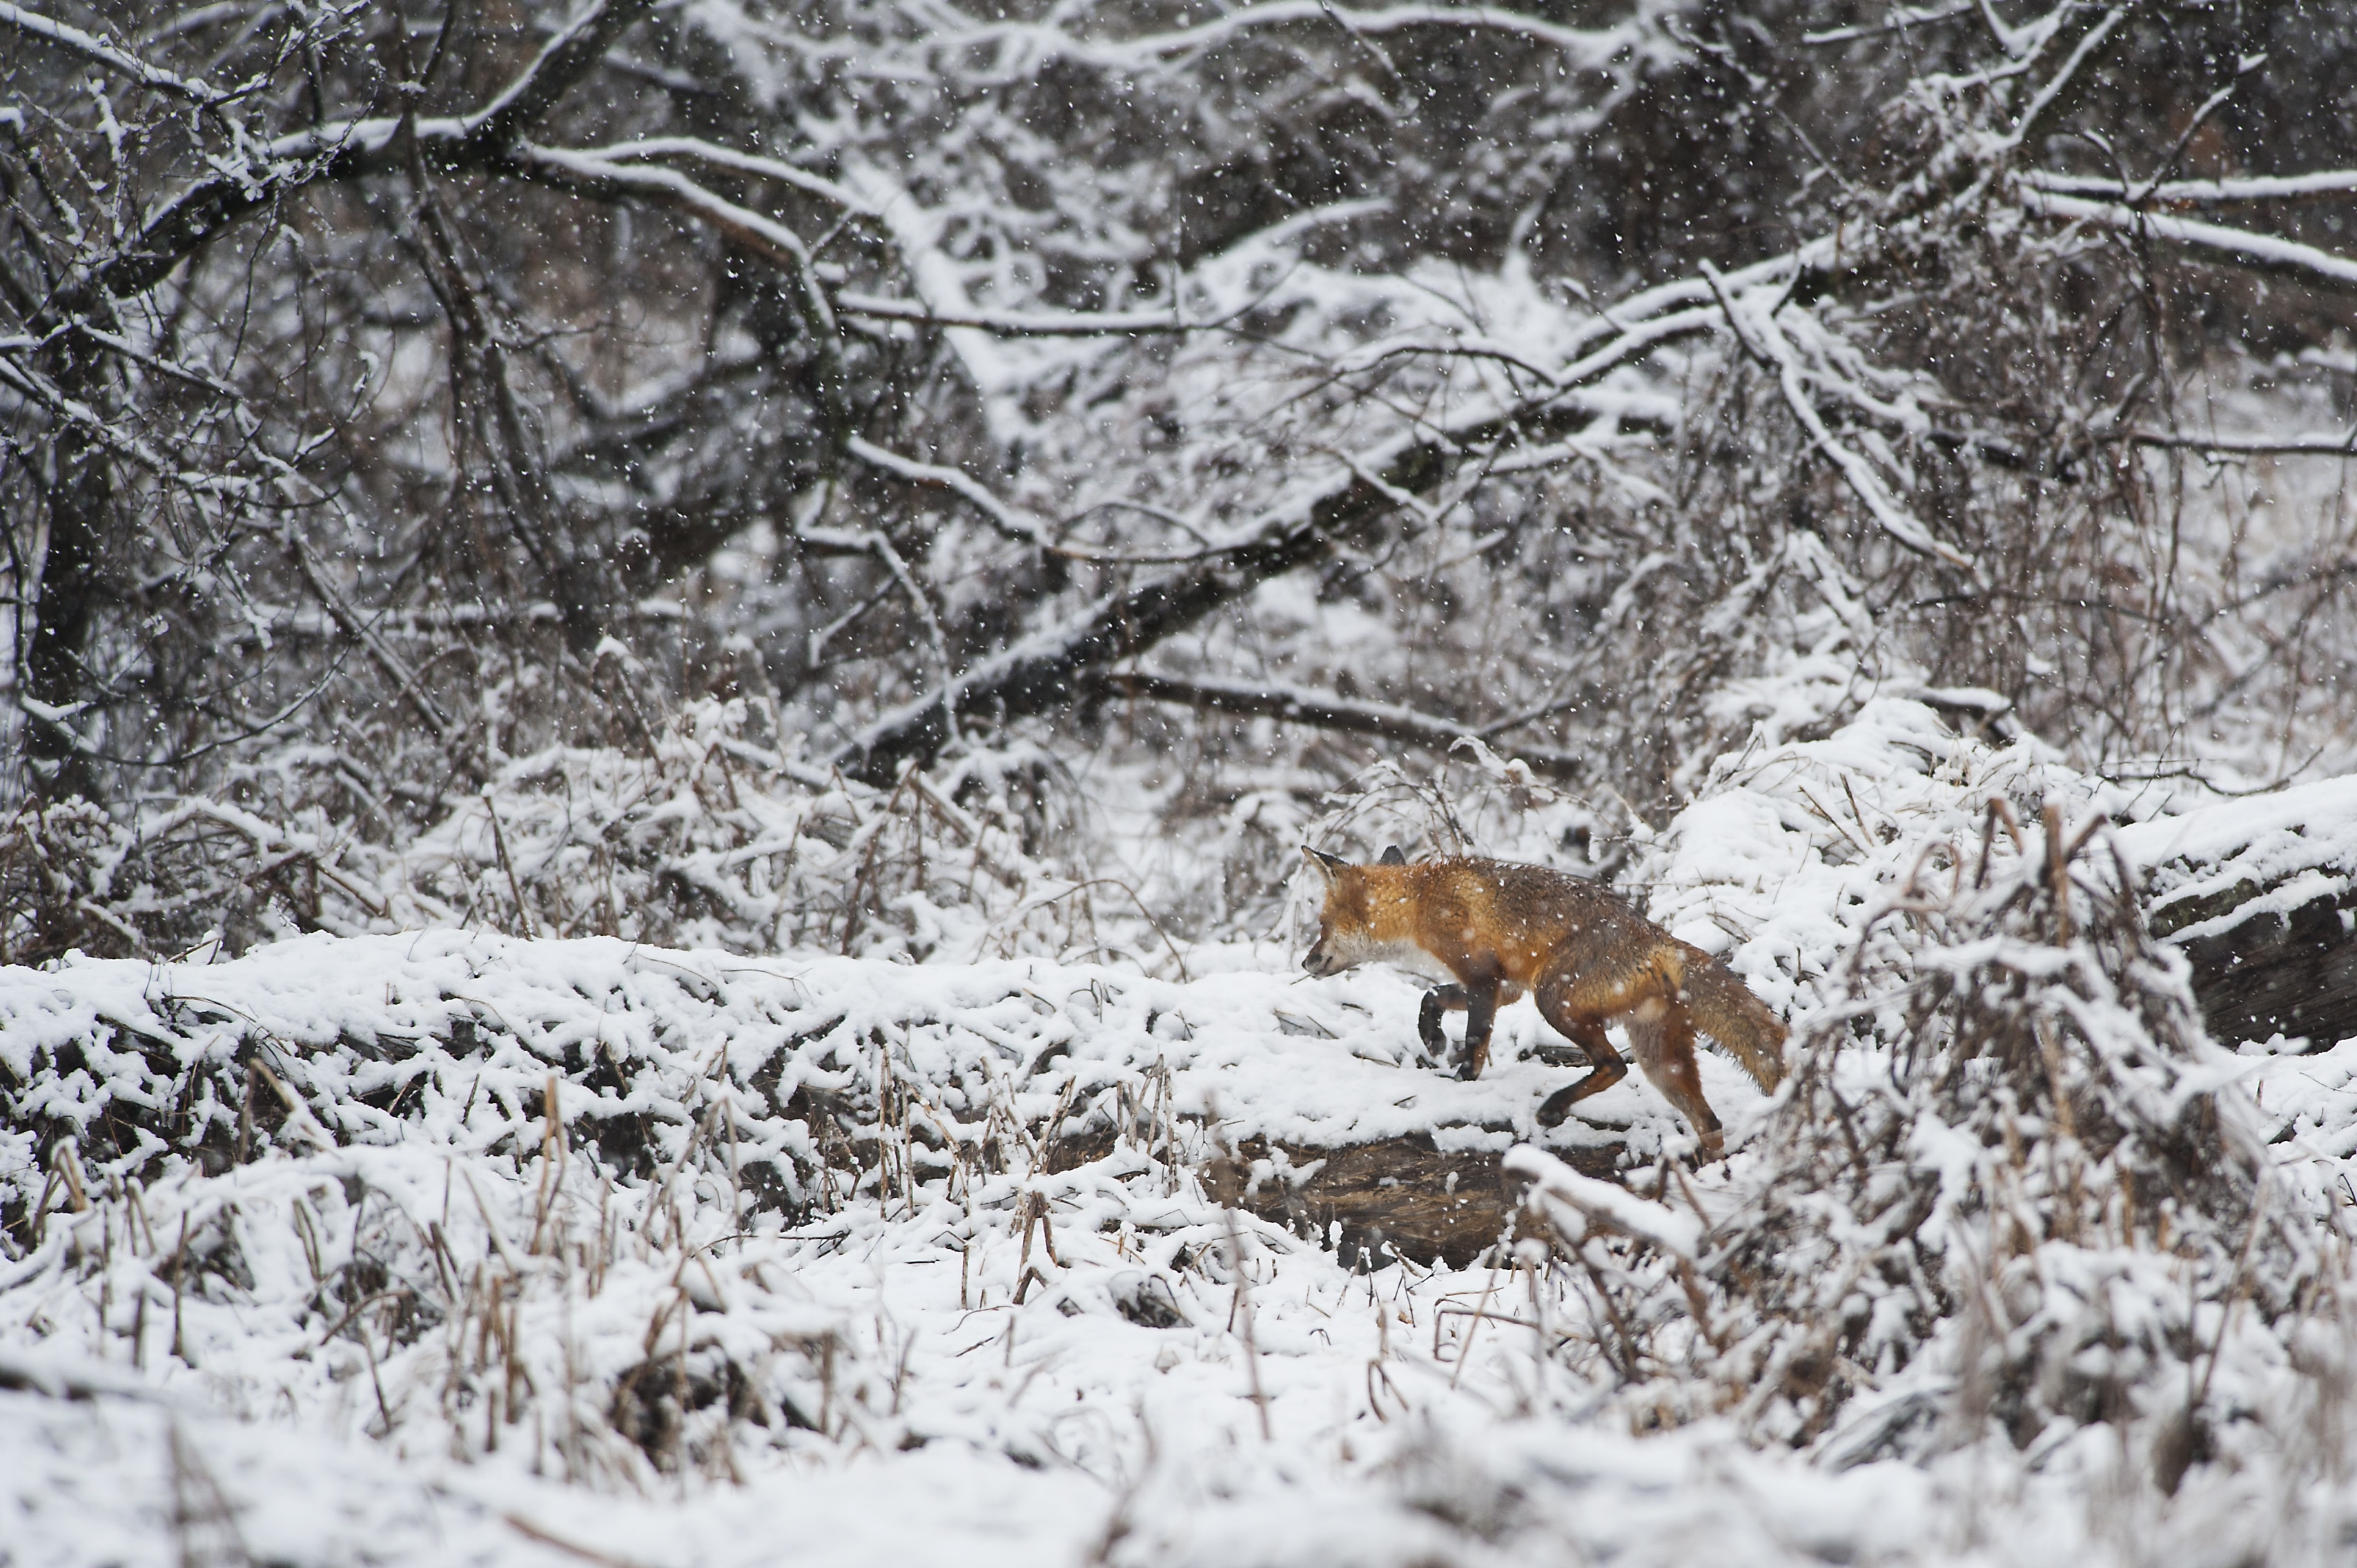 A graceful fox walking through a snowy forest in Palmyra Cove Nature Park